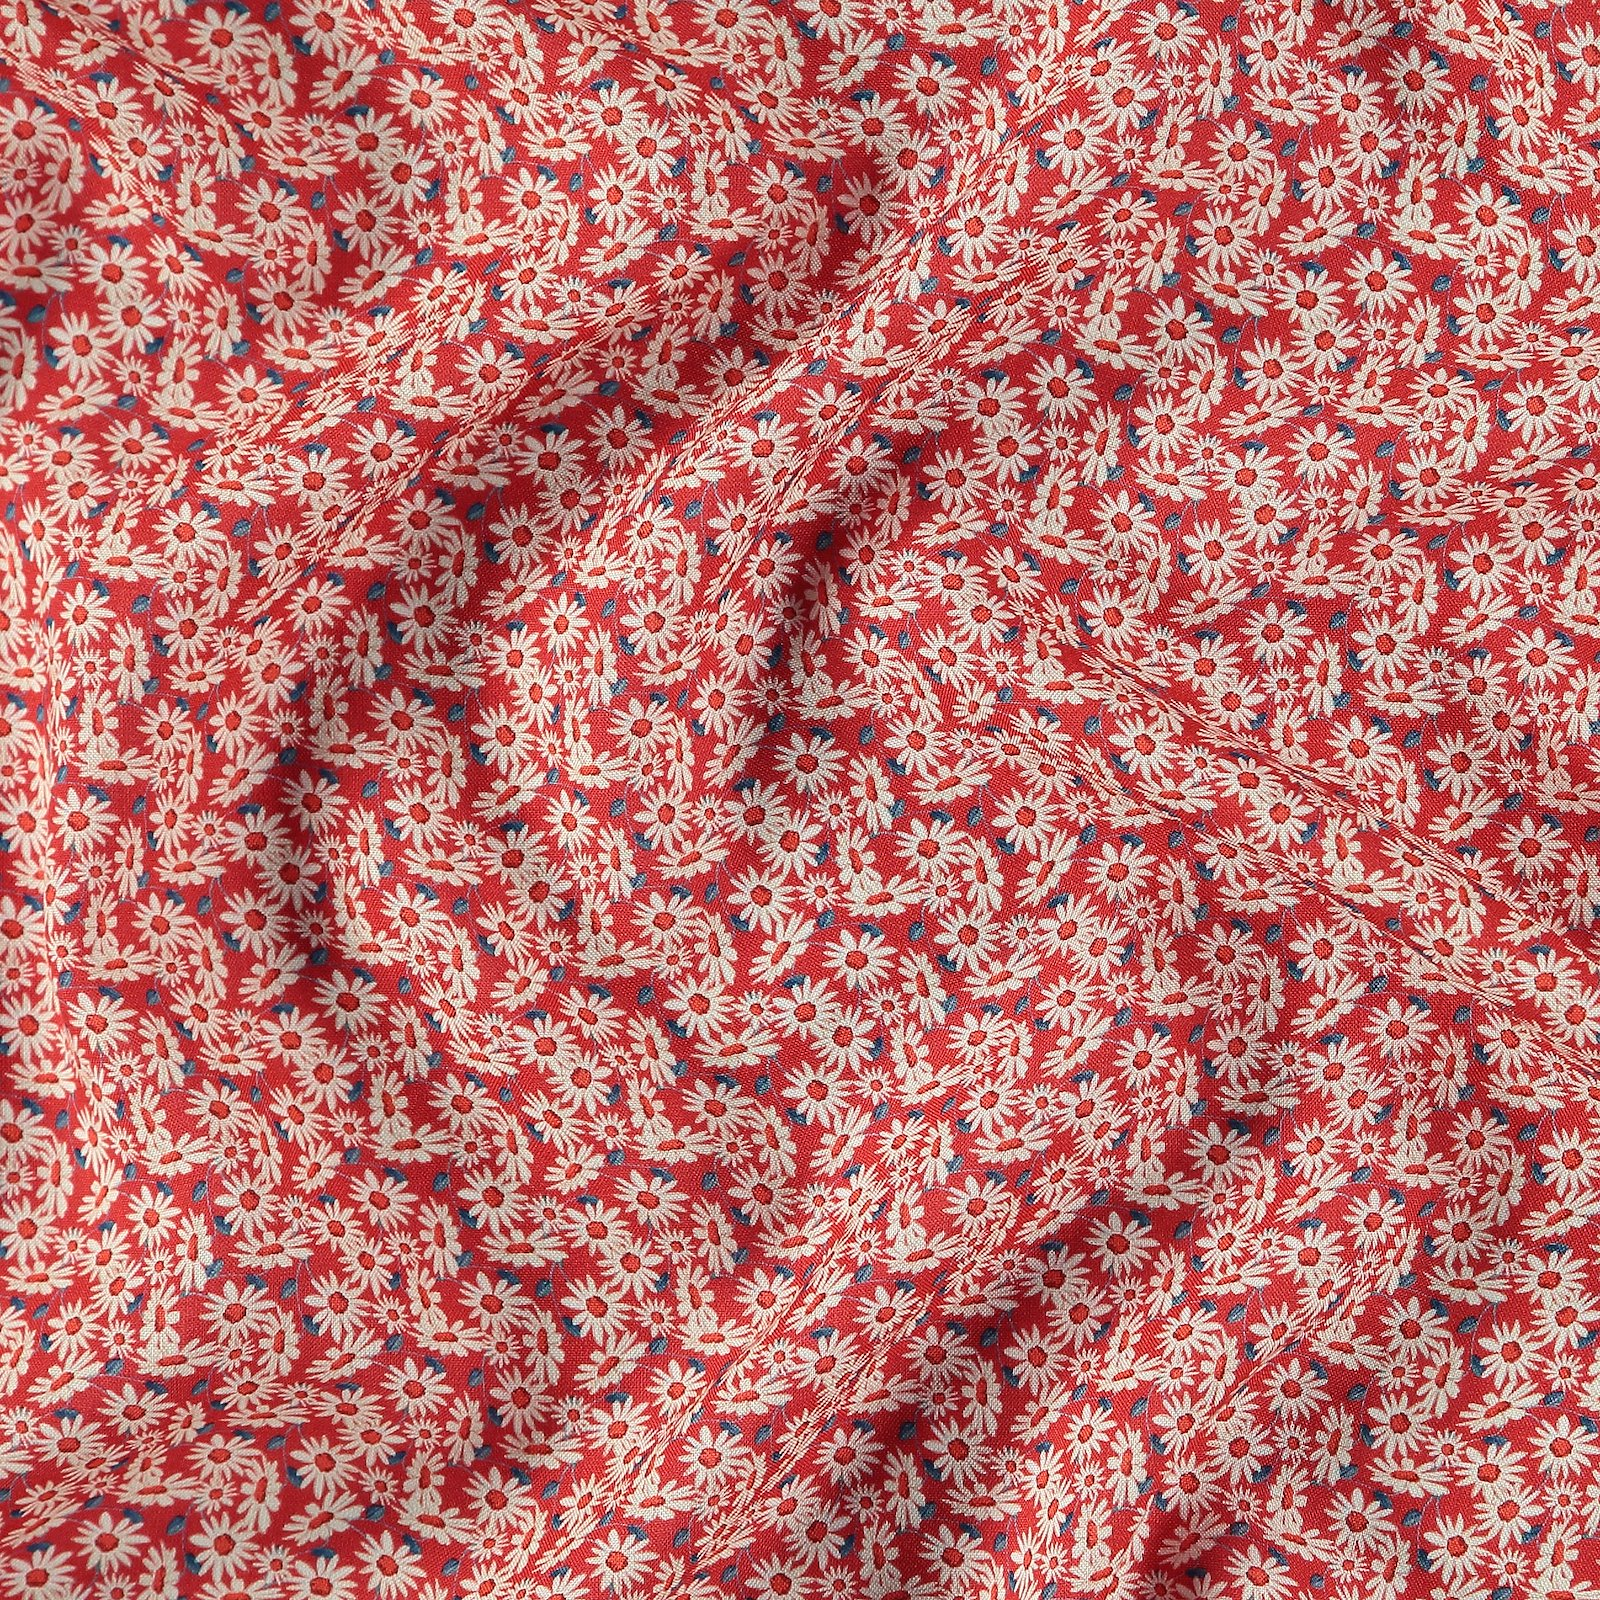 Woven viscose red with white flowers